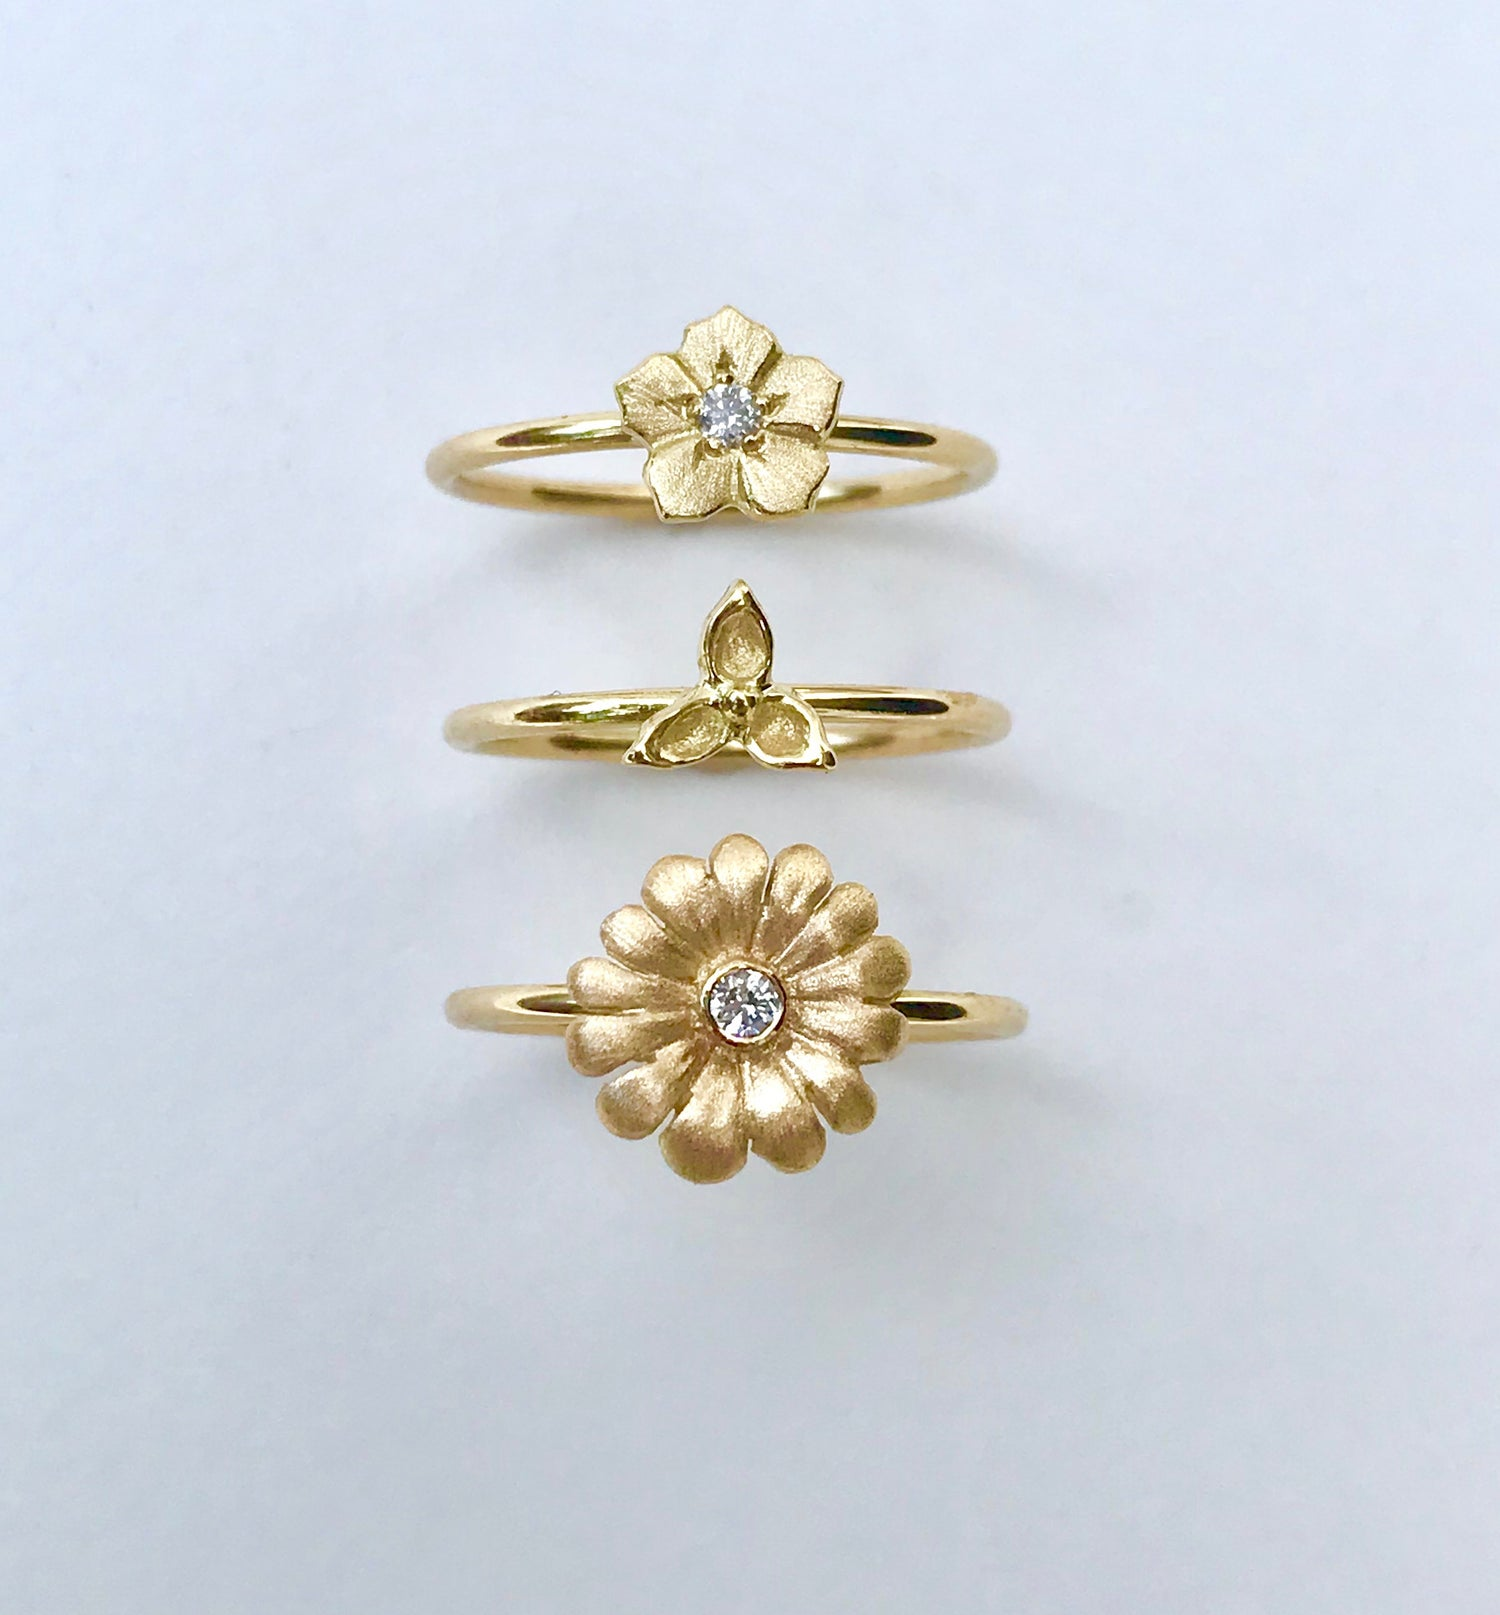 Image of 18K Gold Flower Ring